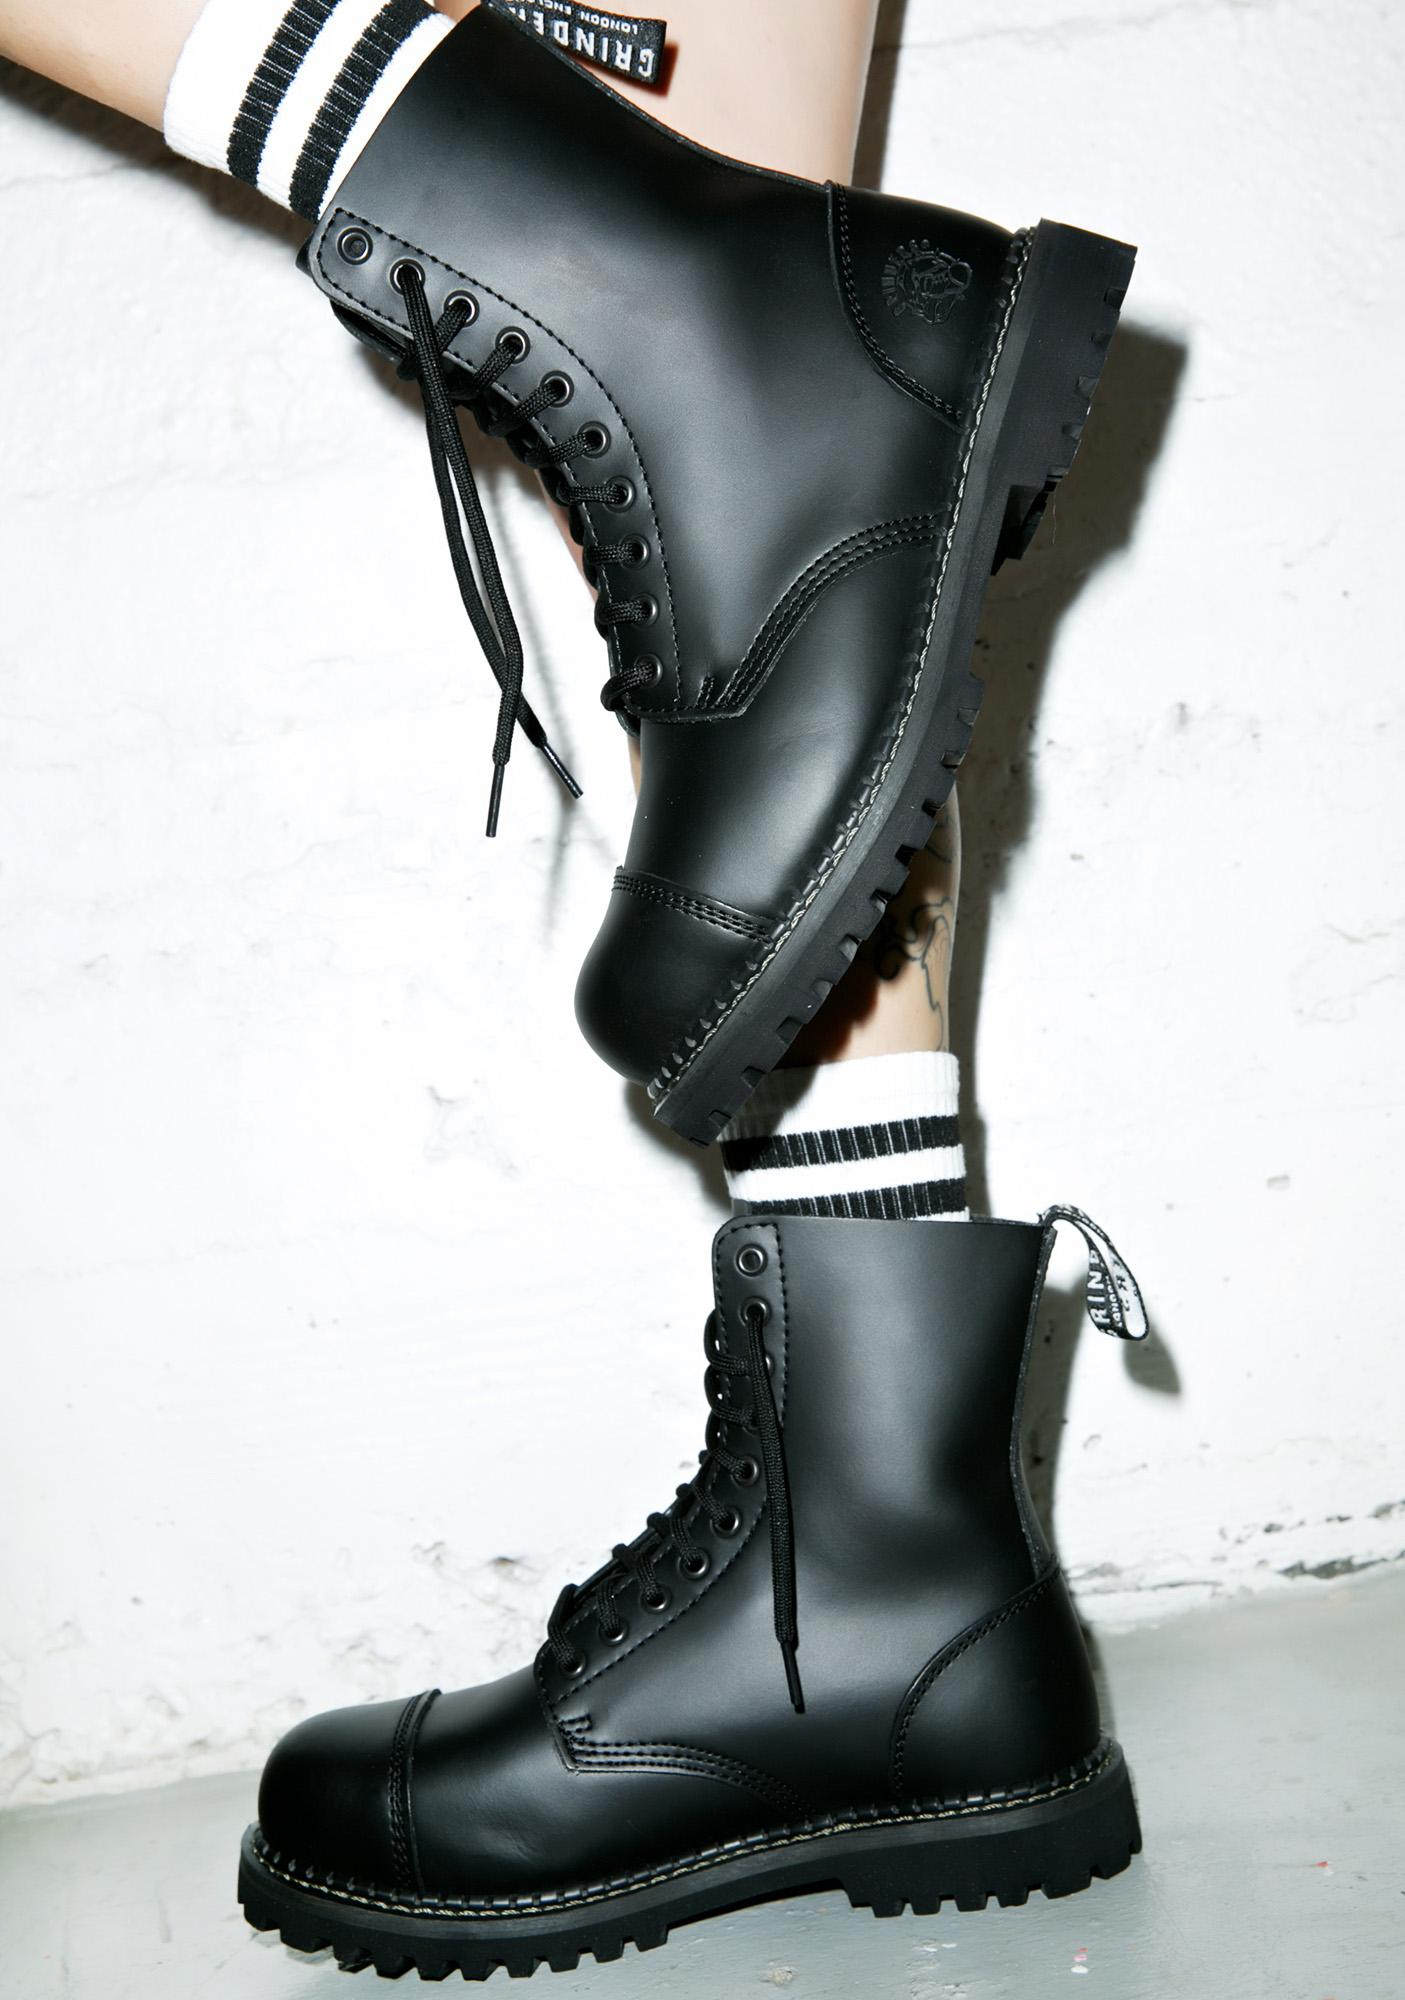 Grinders Stag Boots